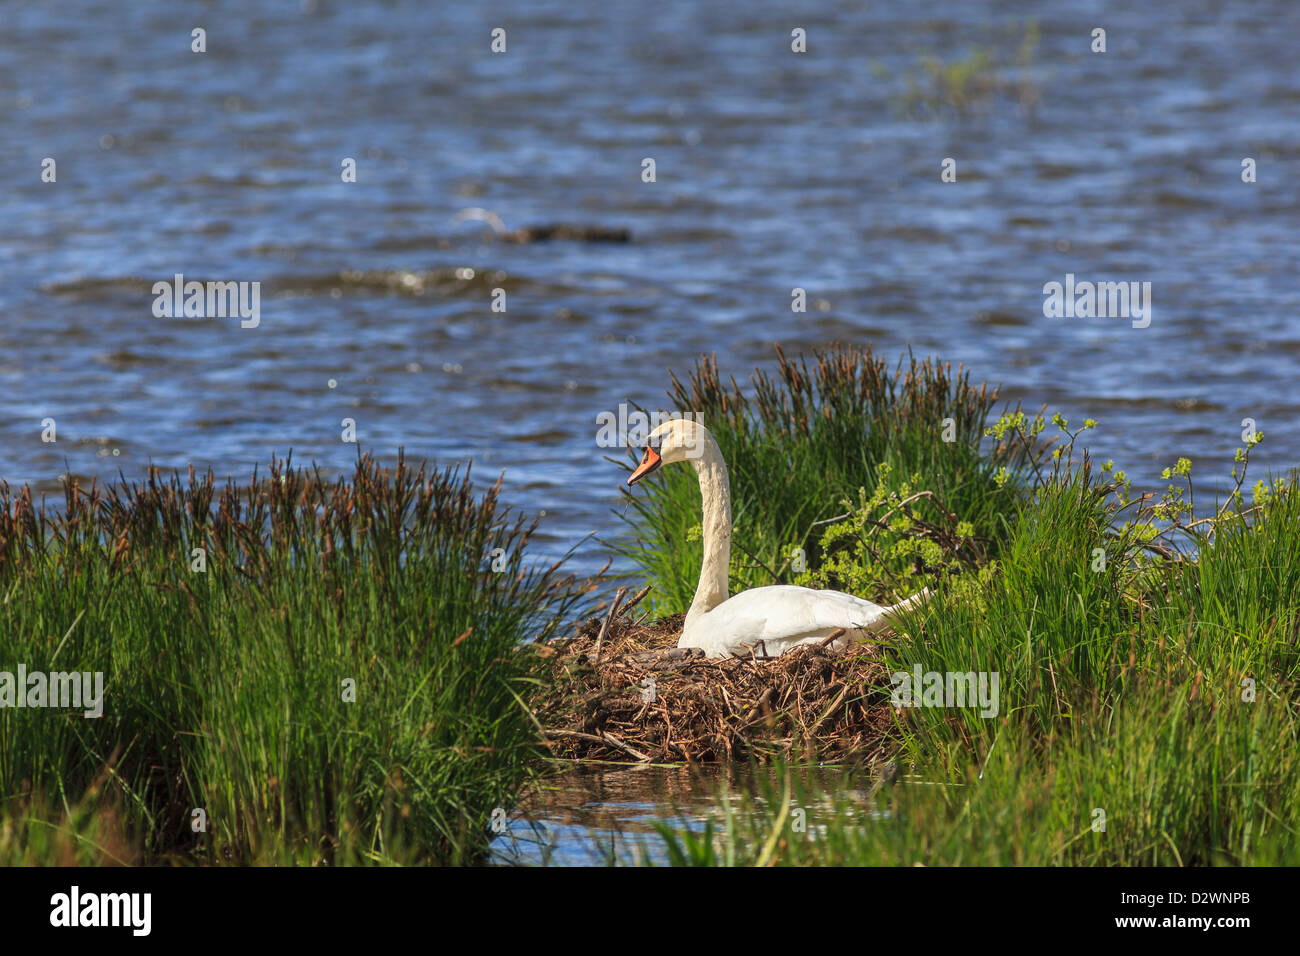 Mute Swan nests in the lake - Stock Image